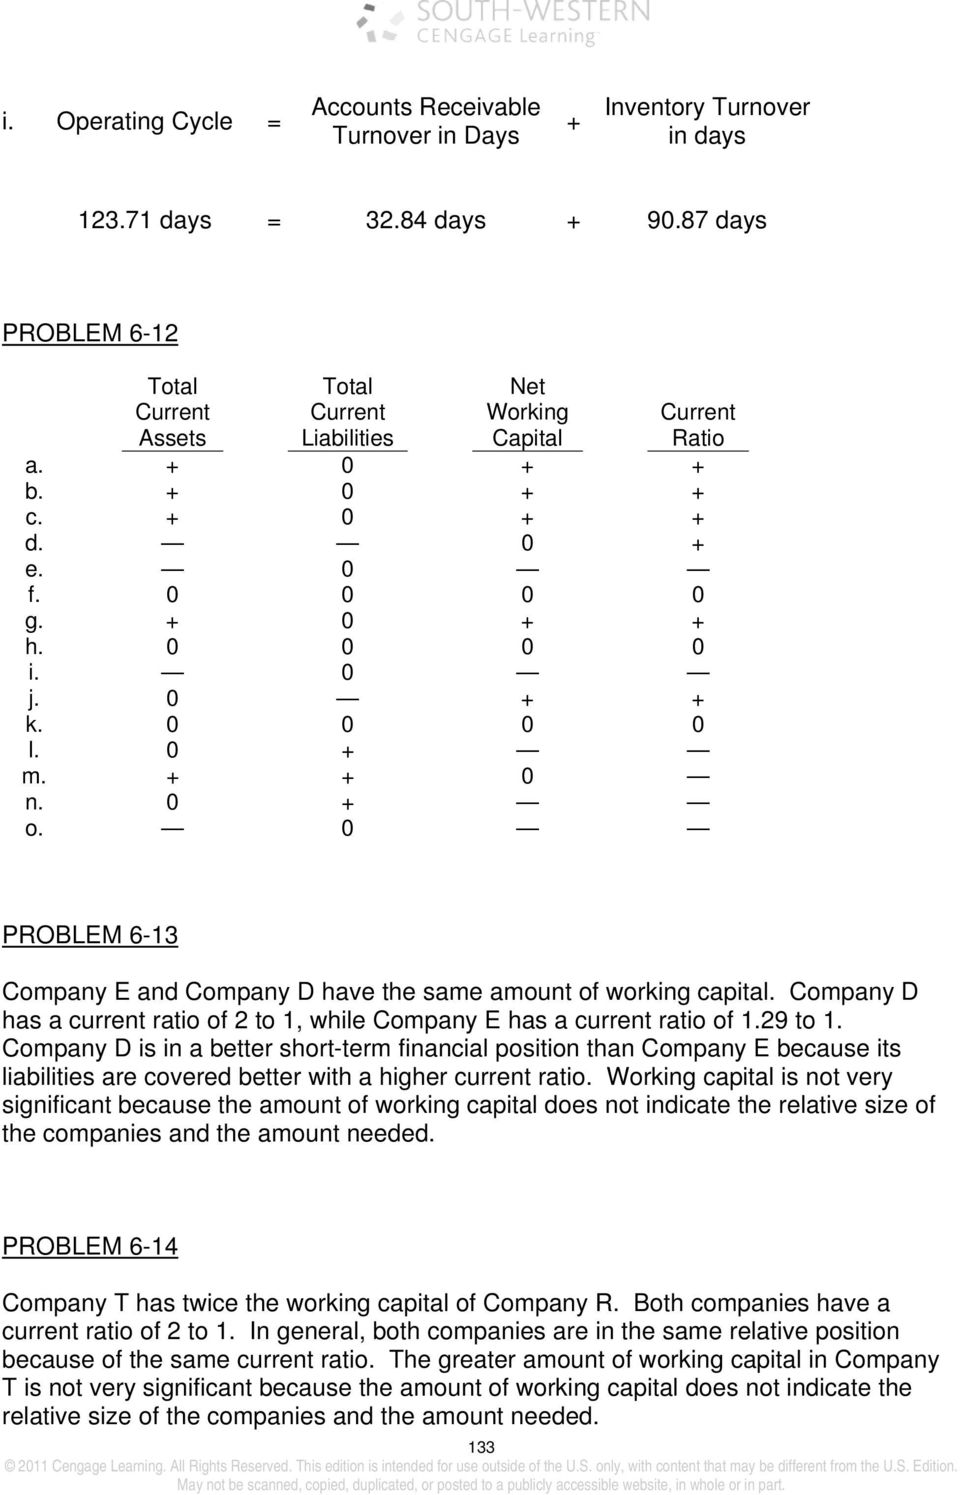 0 0 0 0 l. 0 + m. + + 0 n. 0 + o. 0 PROBLEM 6-13 Company E and Company D have the same amount of working capital. Company D has a current ratio of 2 to 1, while Company E has a current ratio of 1.